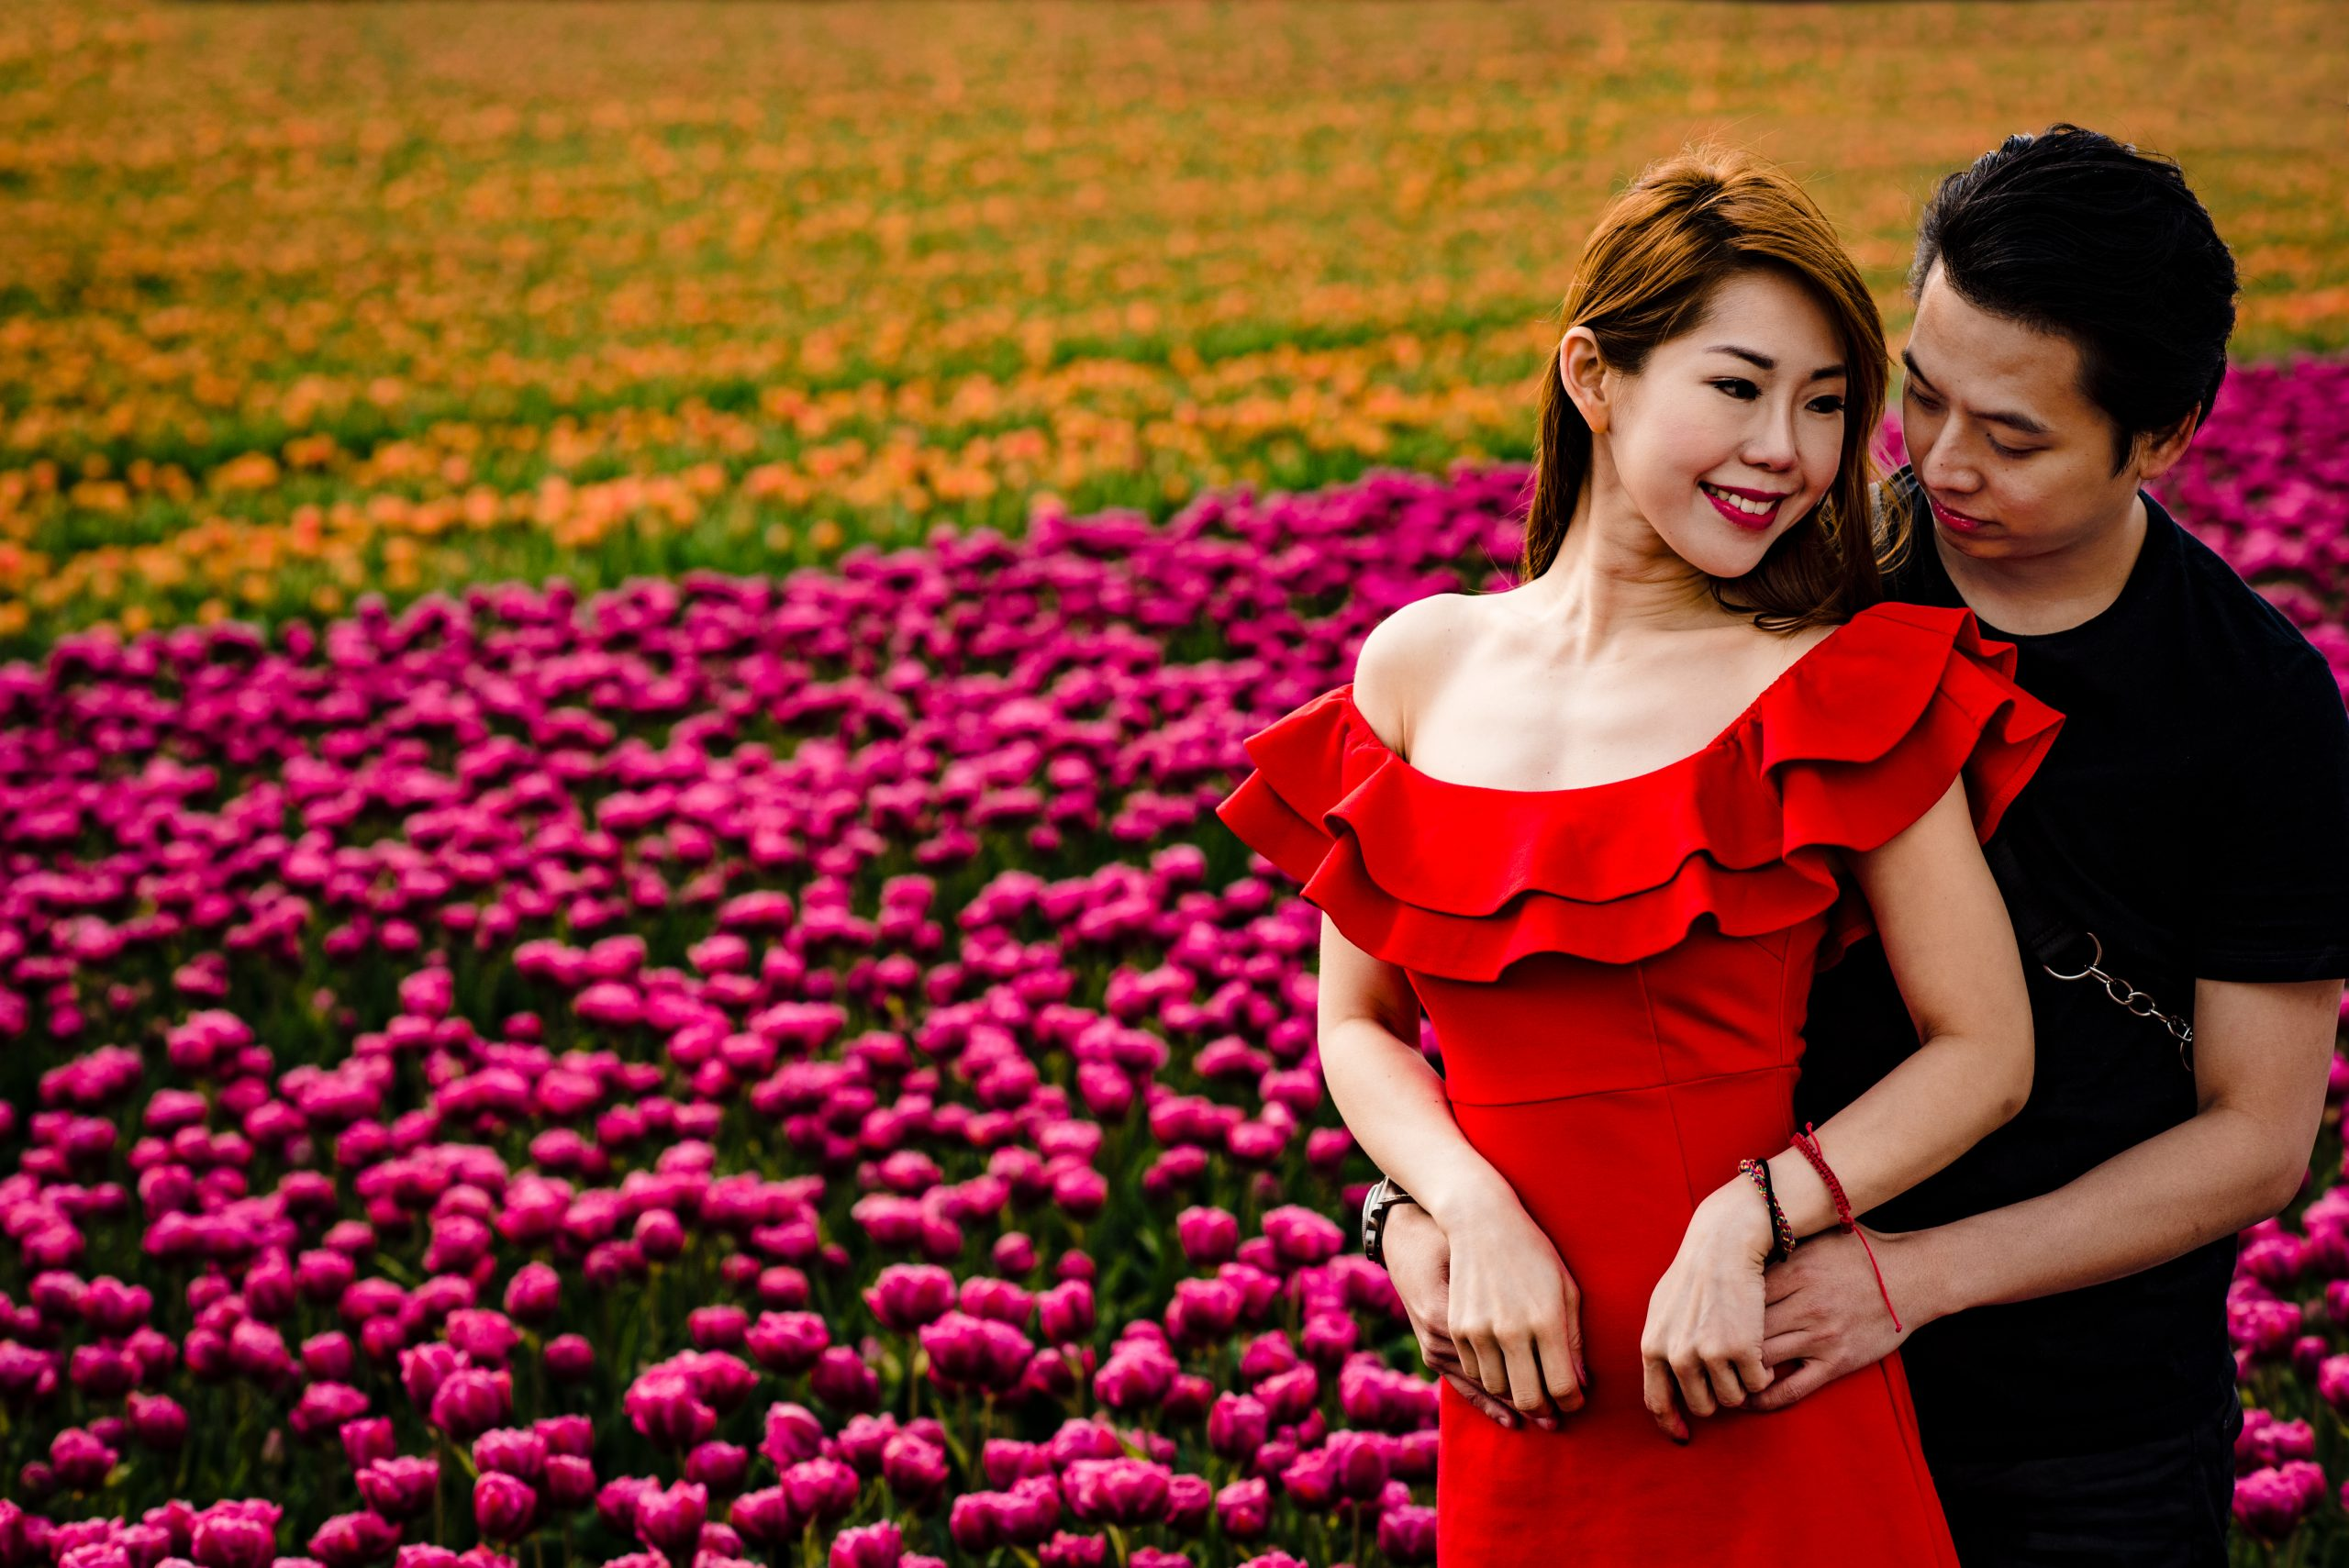 Photoshoot in the Amsterdam Tulip fields